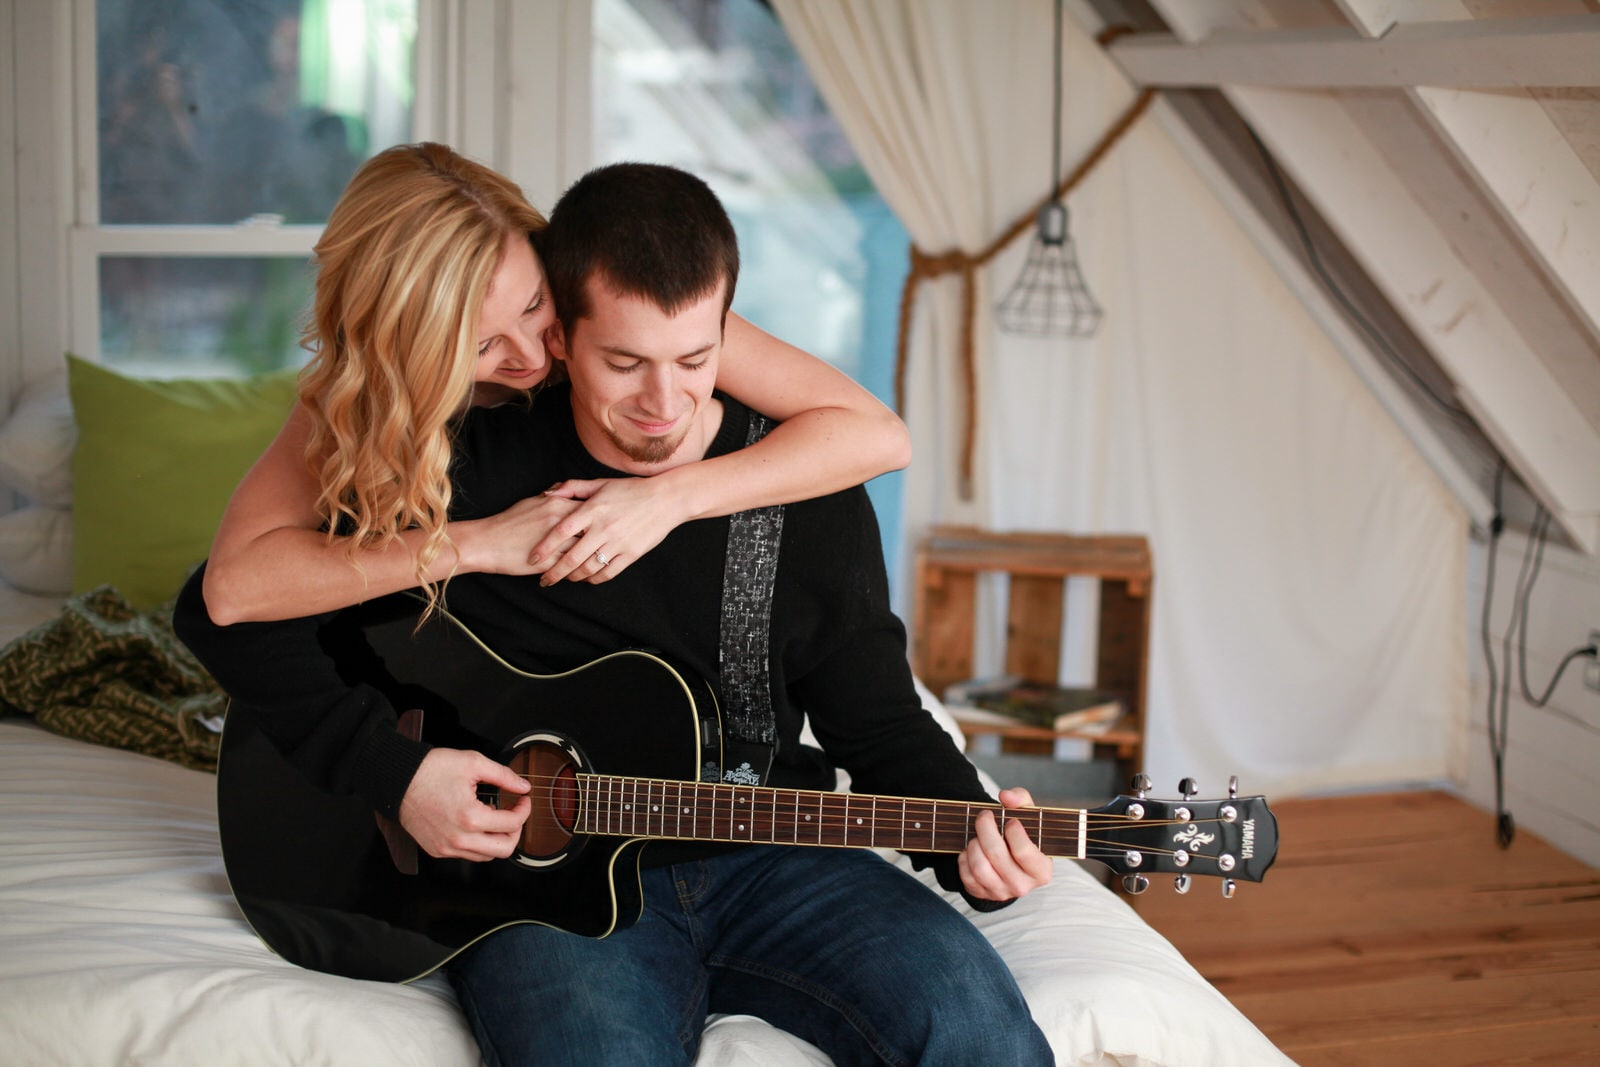 Engagement Photography The couple is sitting on a bed while playing guitar.